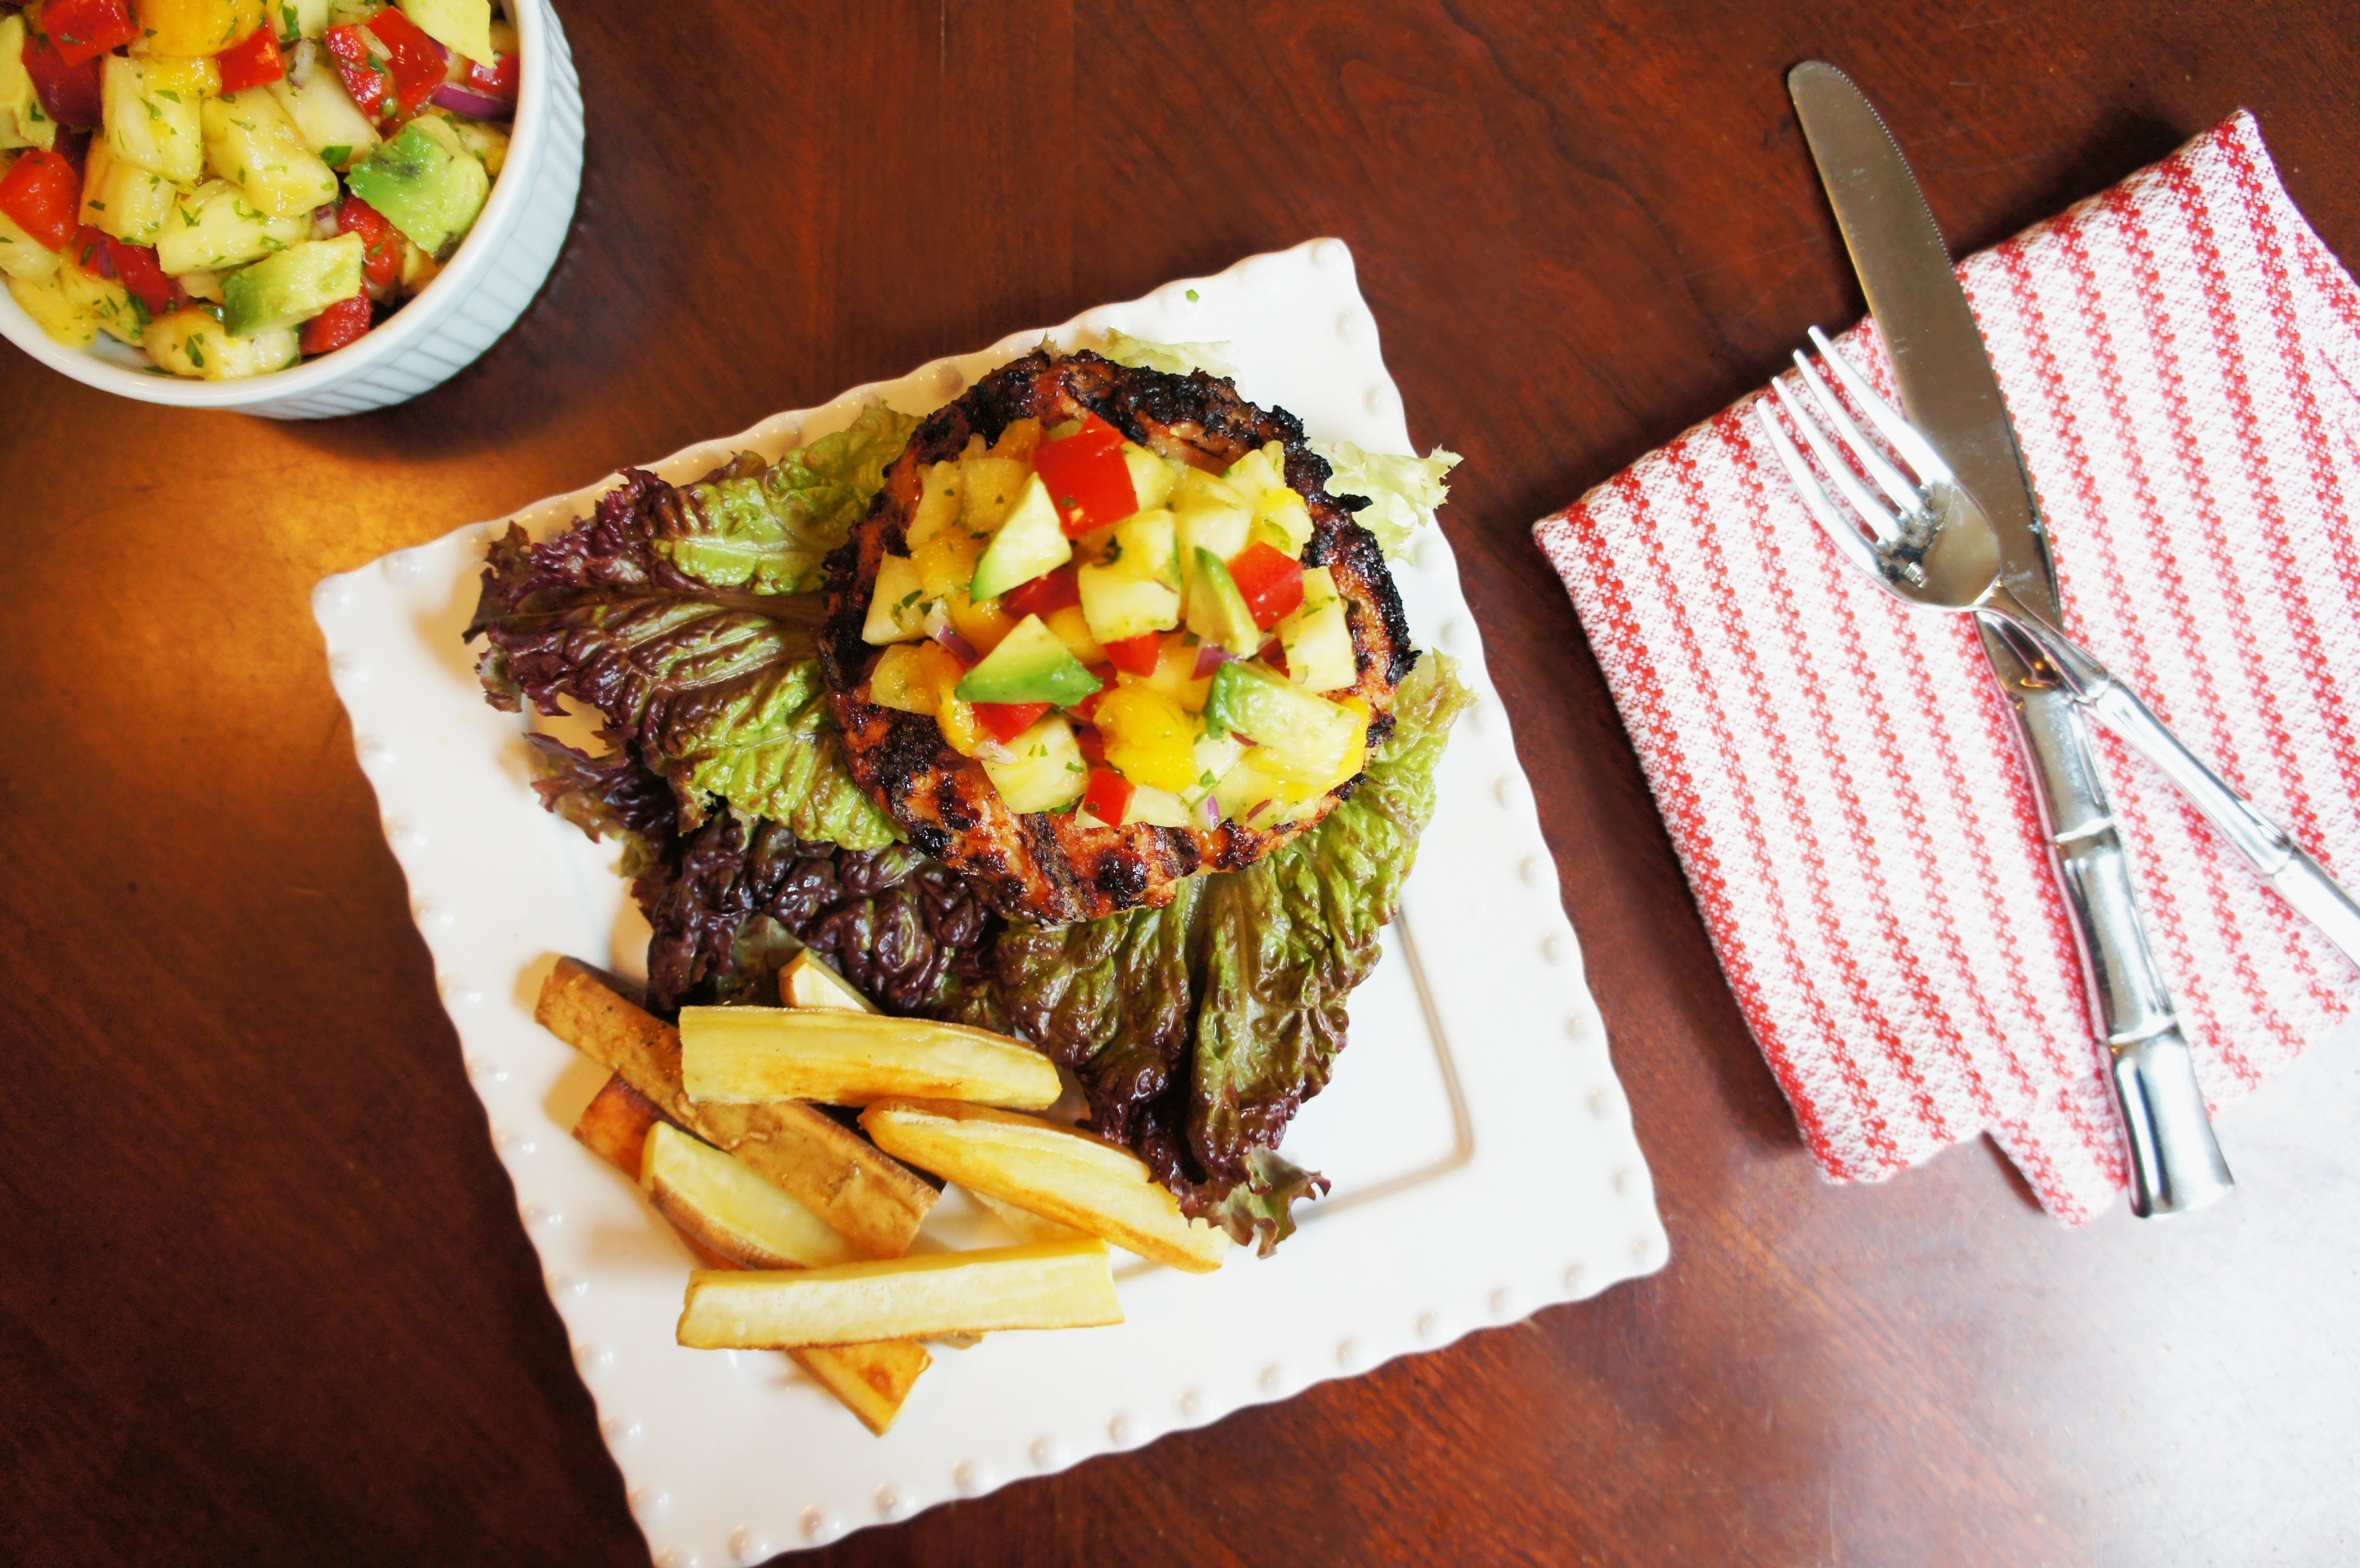 Teriyaki Burgers With Pineapple, Mango & Avocado Salsa